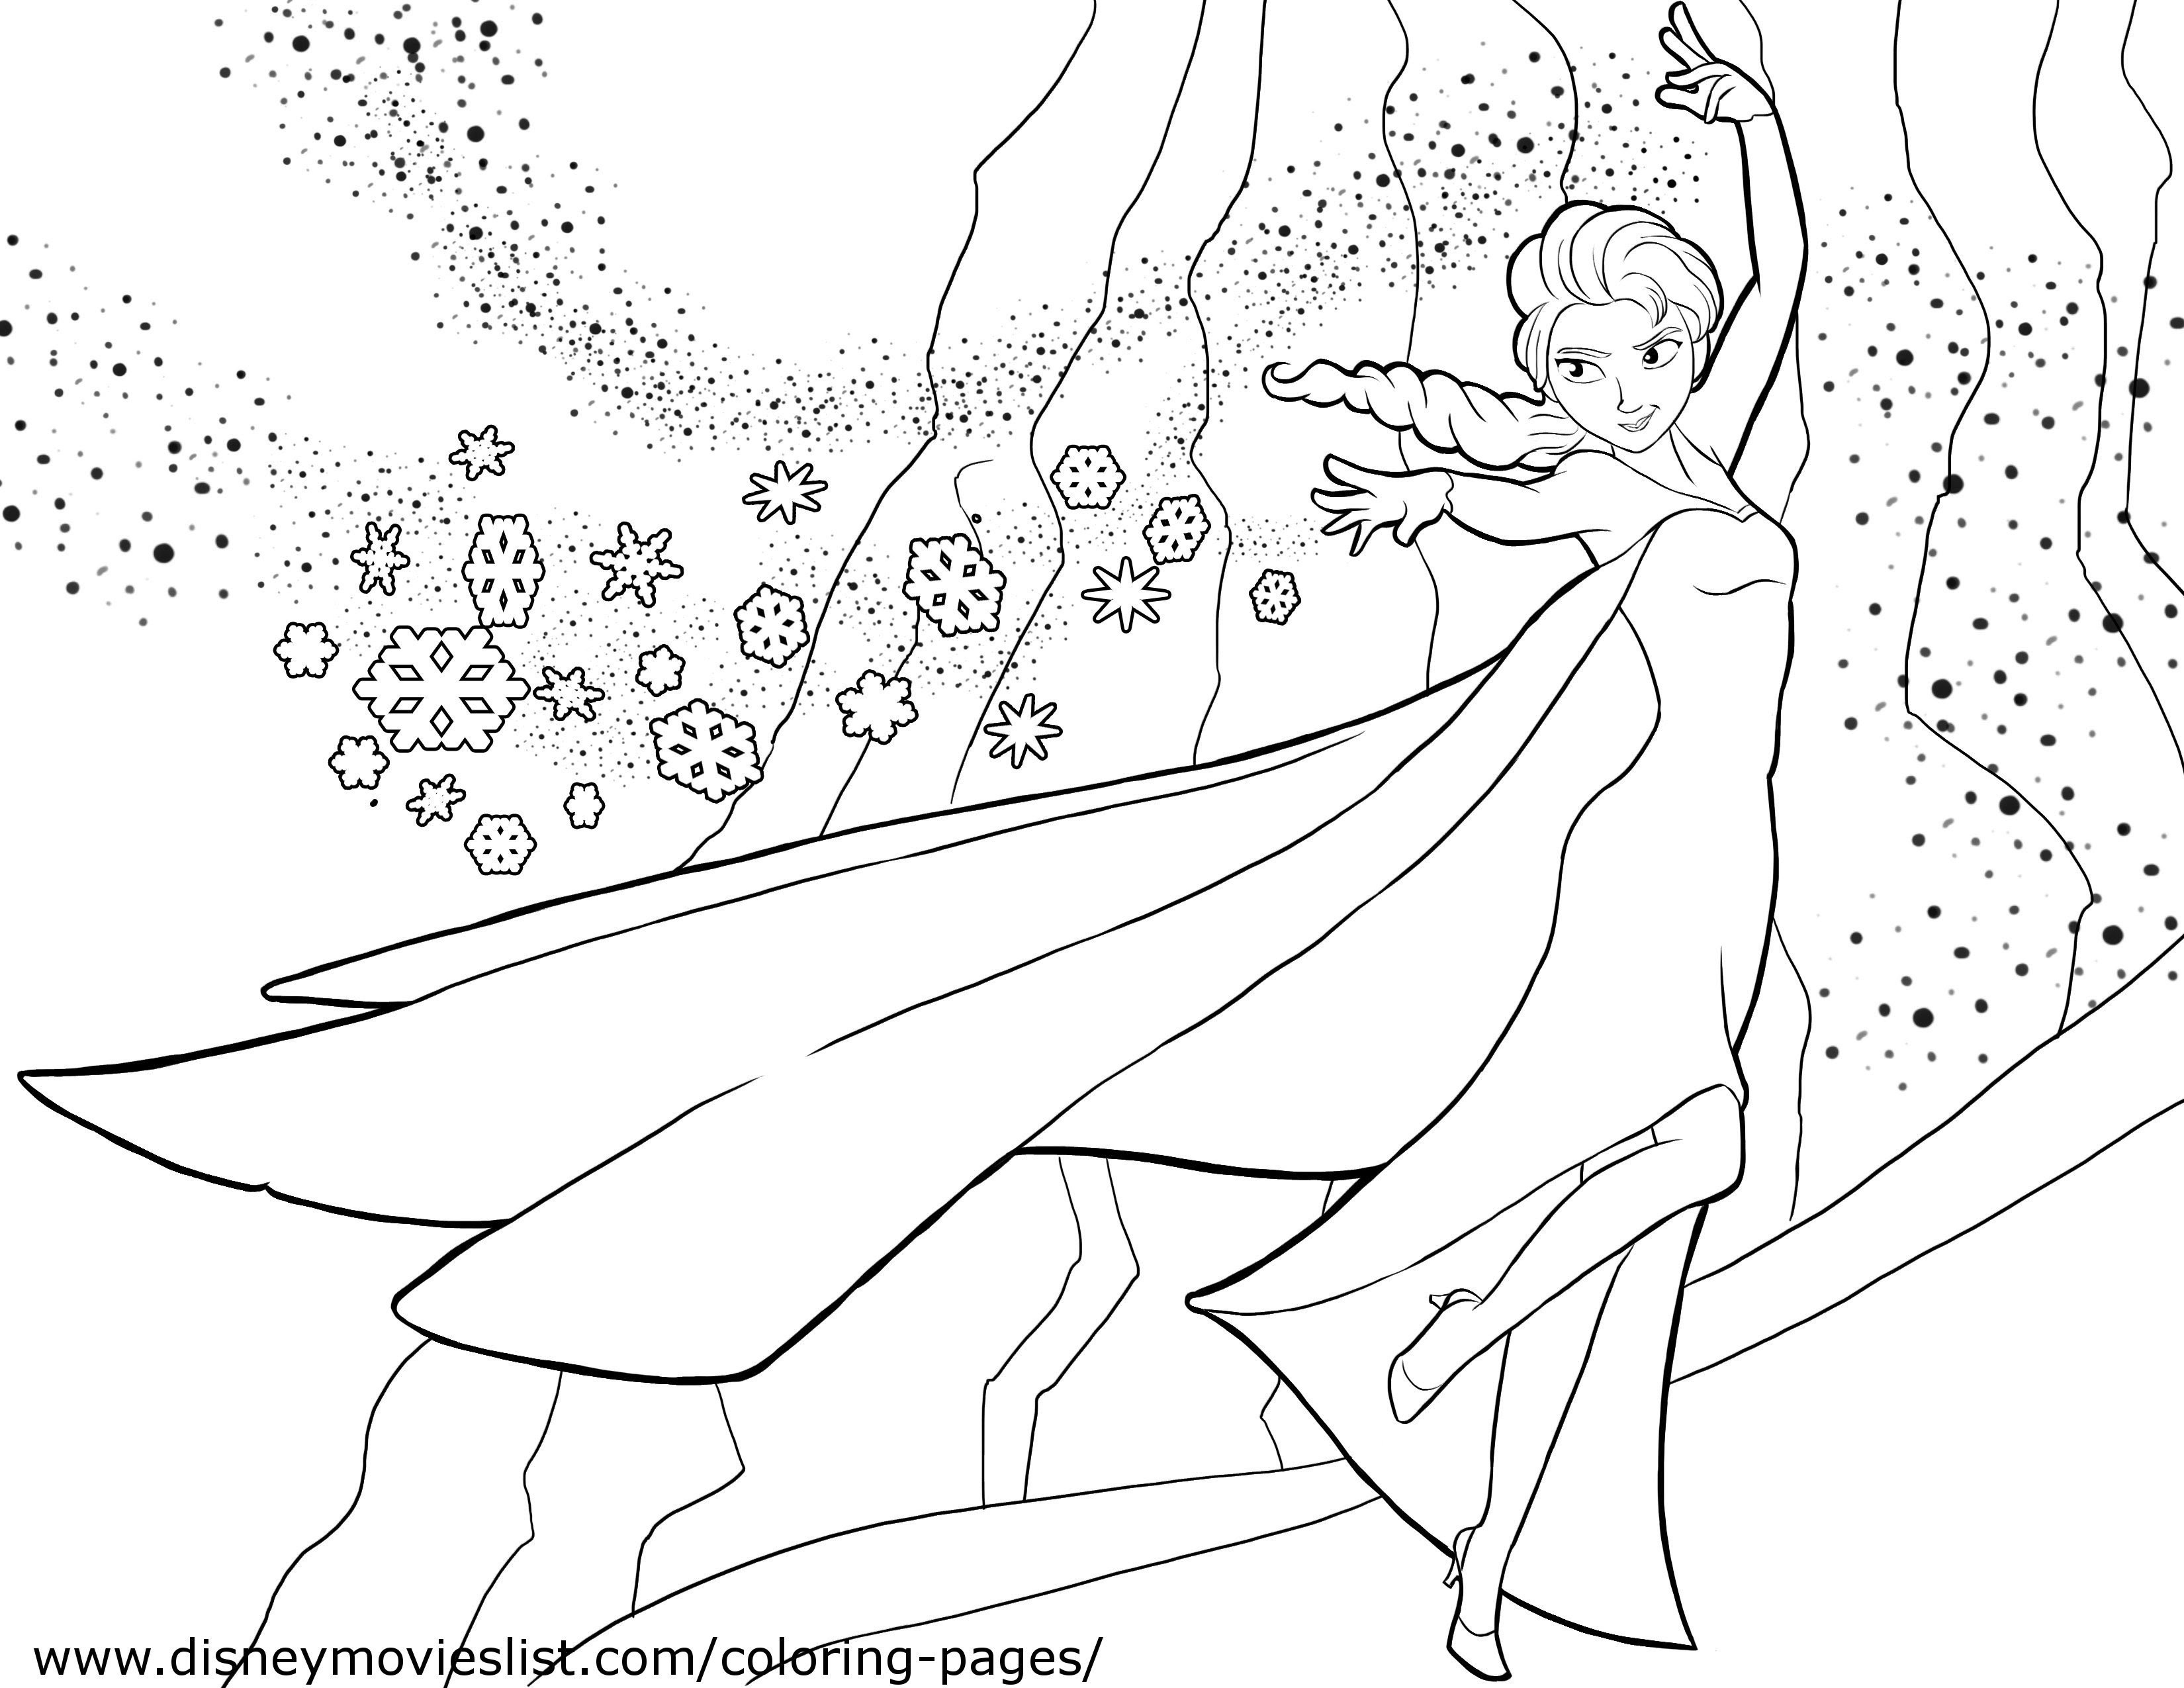 Elsa And Anna Coloring Pages Printable At Getcoloringscom Free